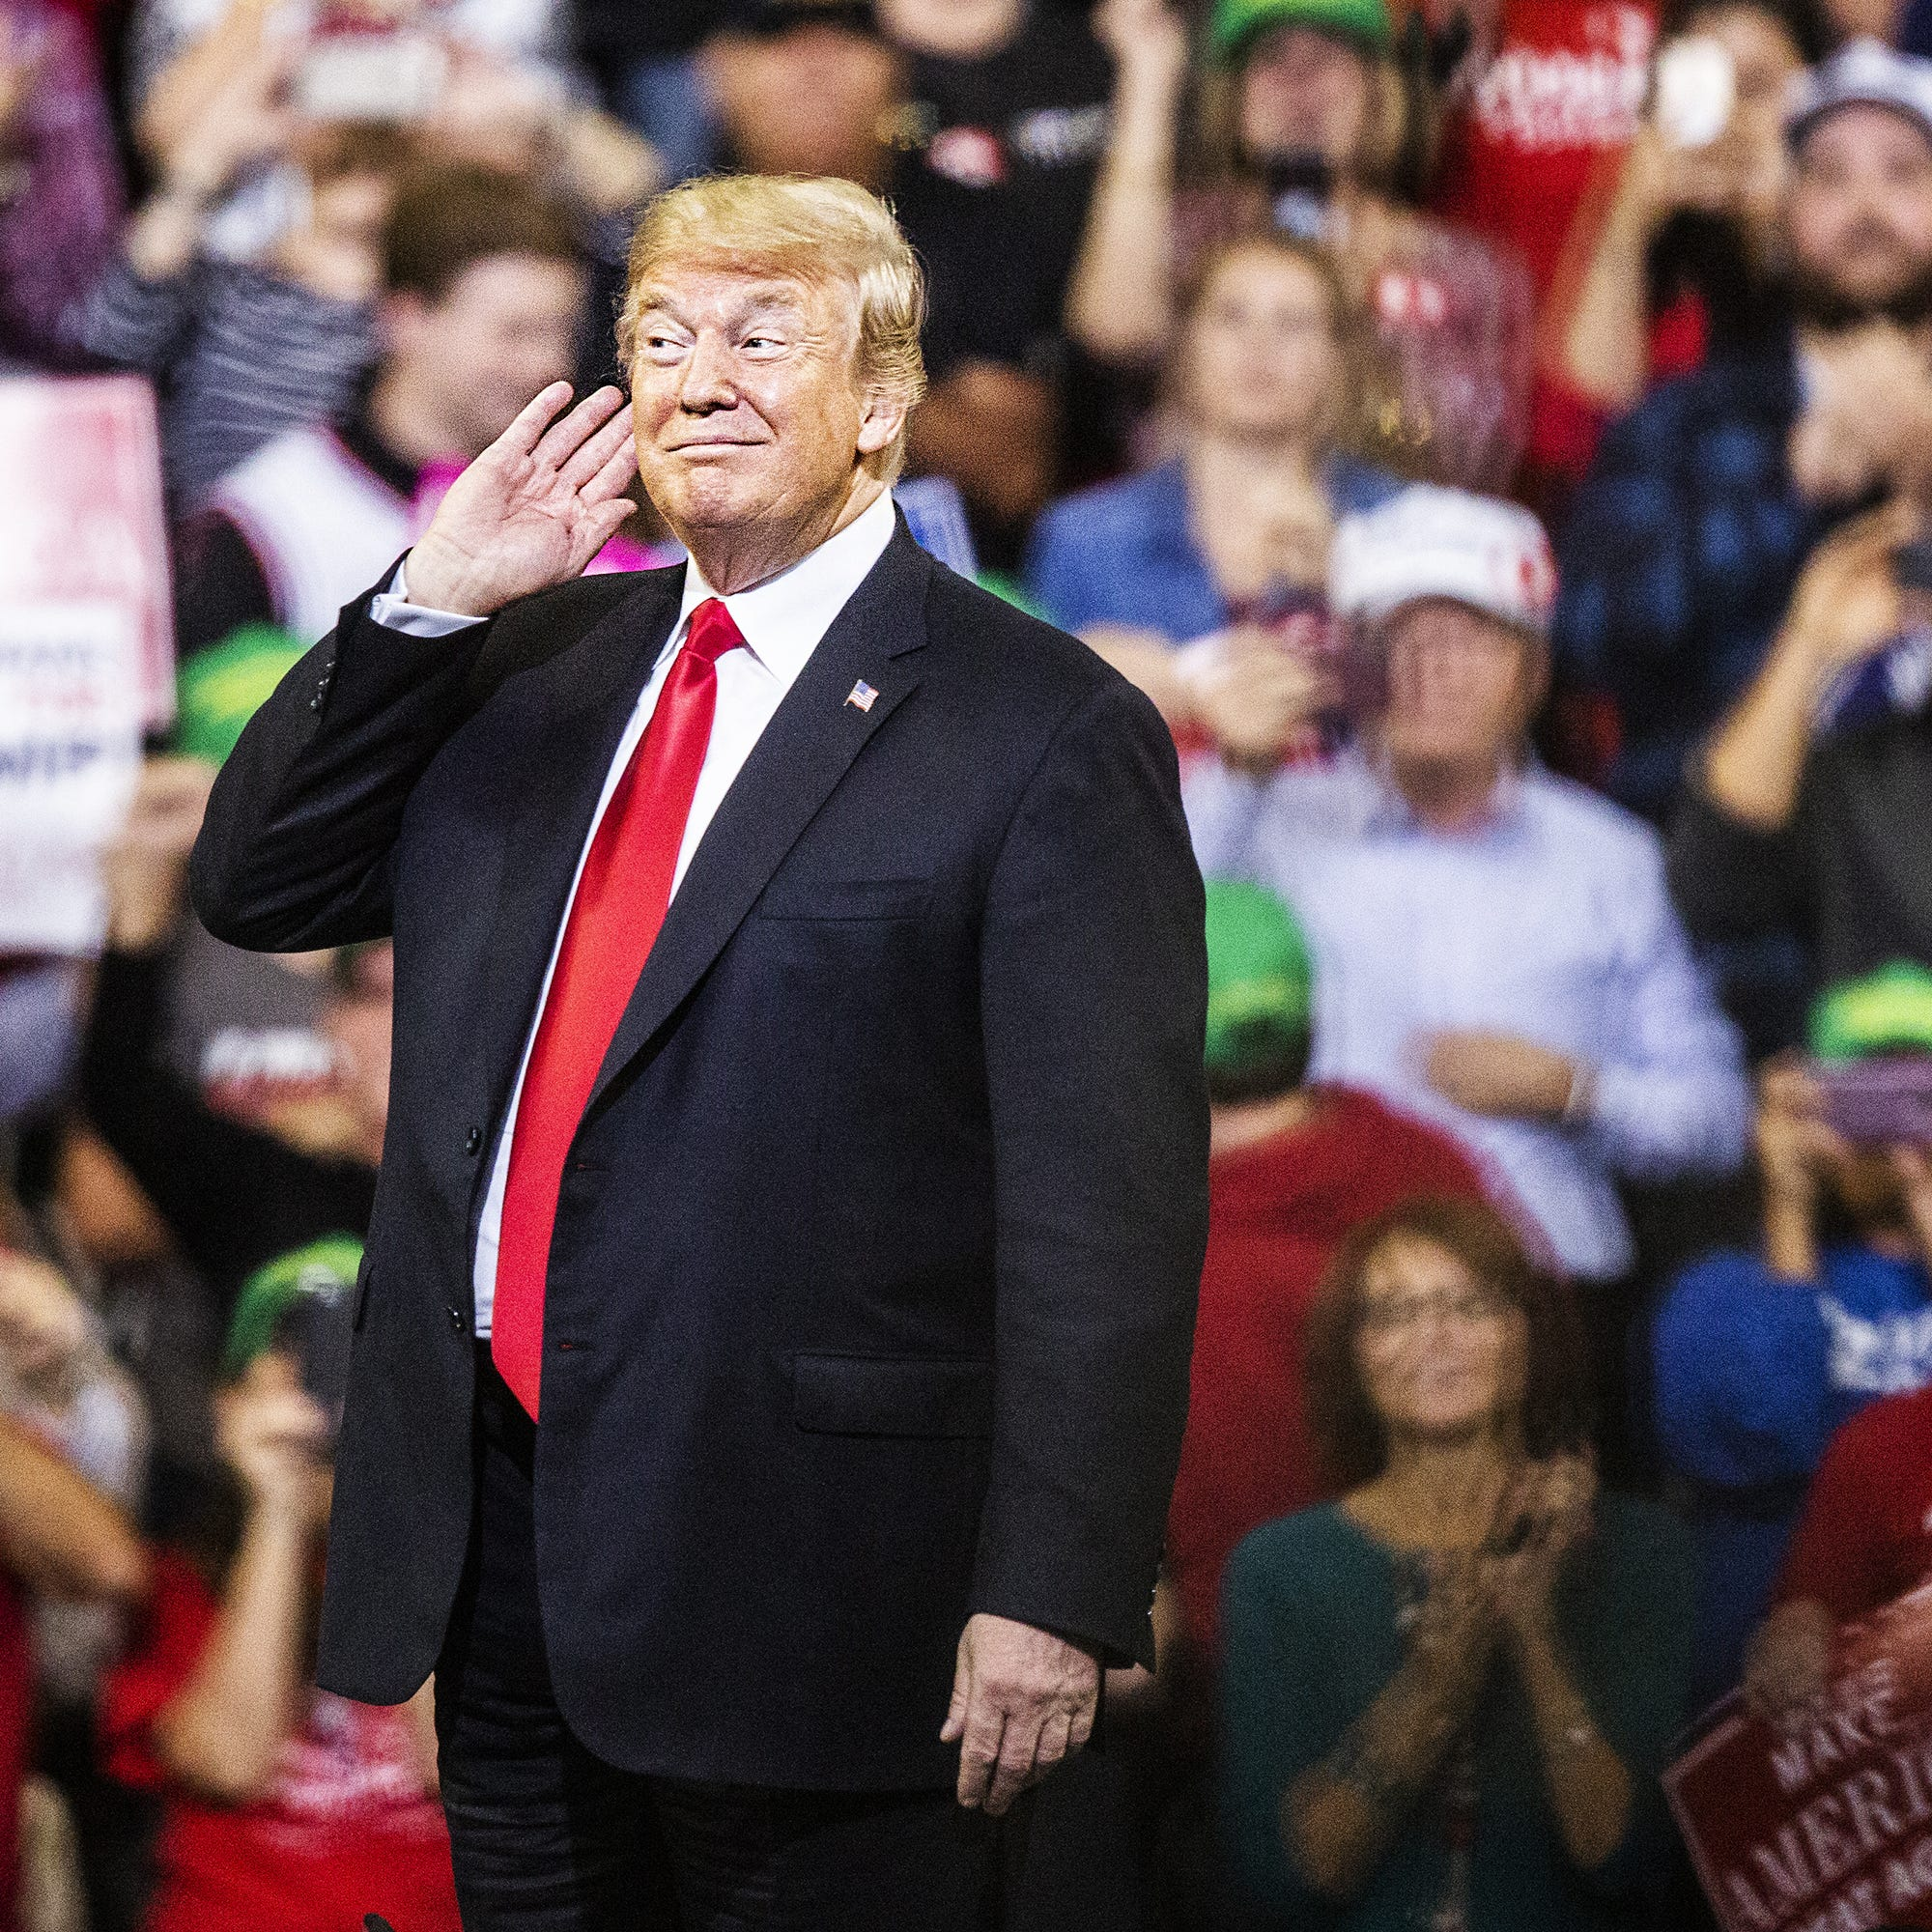 Iowa Poll: Trump has big fan base among Iowa Republicans, but they welcome challengers